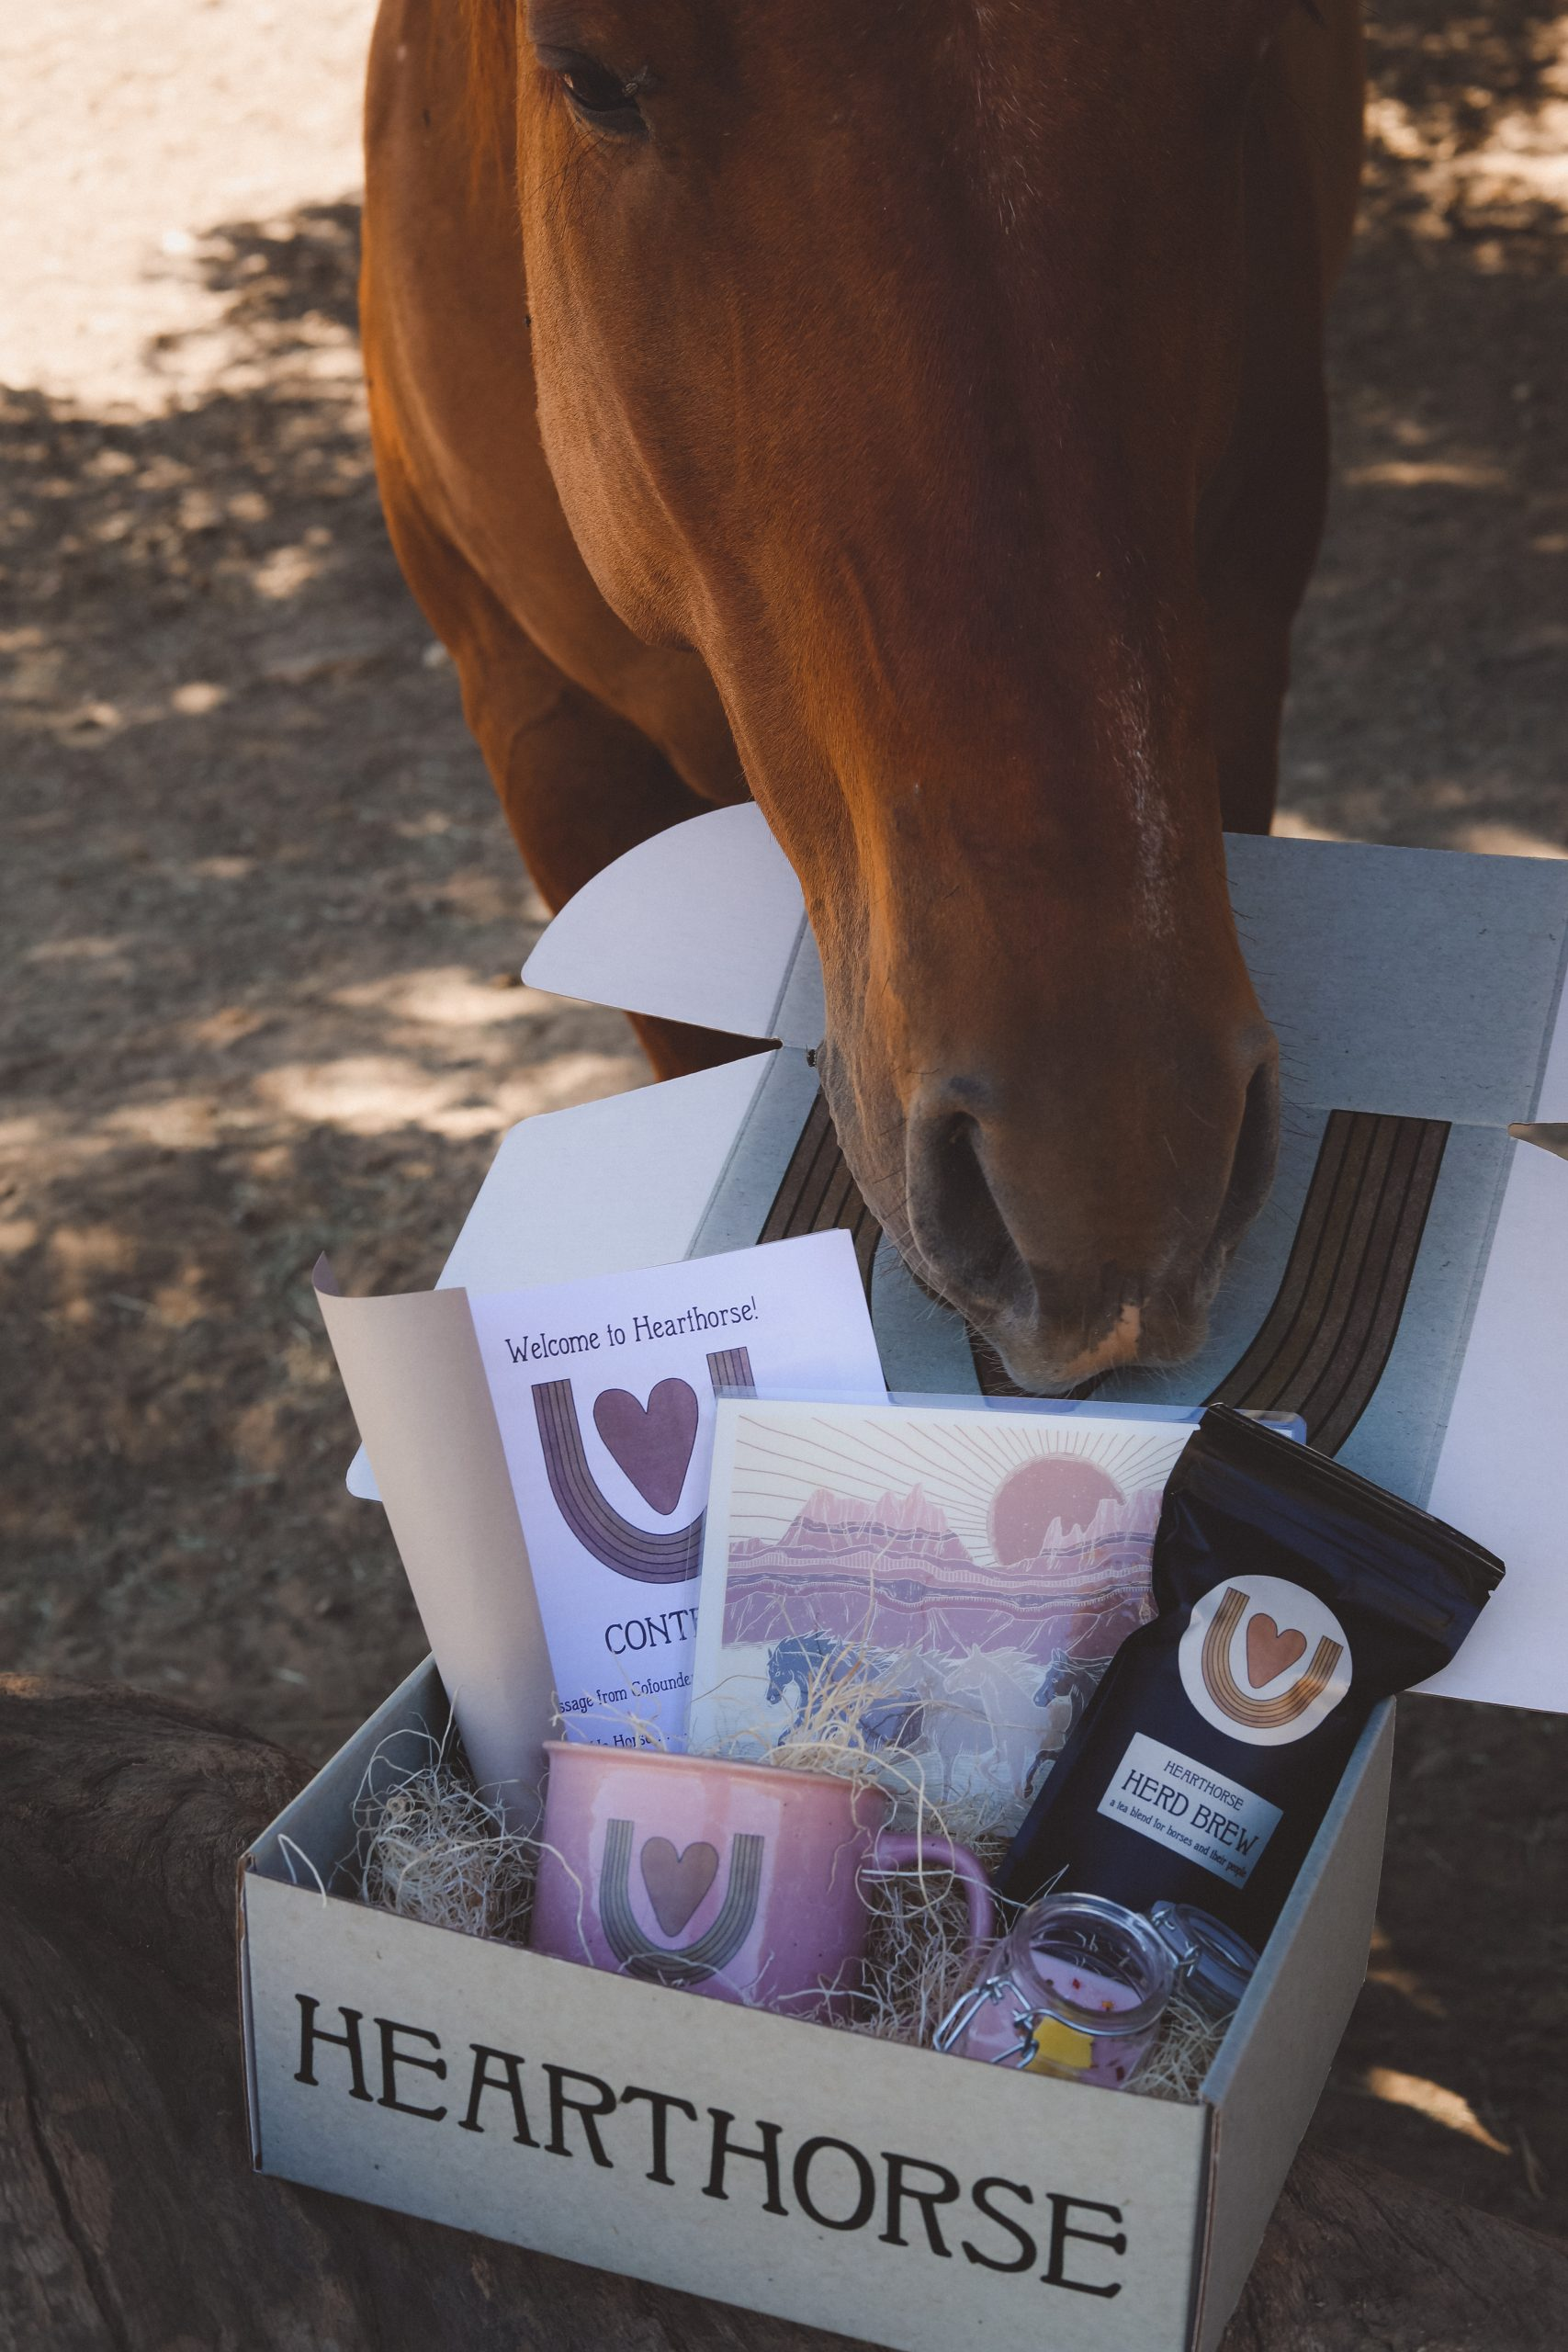 Charlotte can talk horse. Seriously! She is an animal communicator and medium who spends a lot of time talking to horses.In episode 14, she tells me all about how her life shaped the way she advocates for horses today through her business and online community, Hearthorse. Available in episode 14 of the For Animals For Earth Podcast